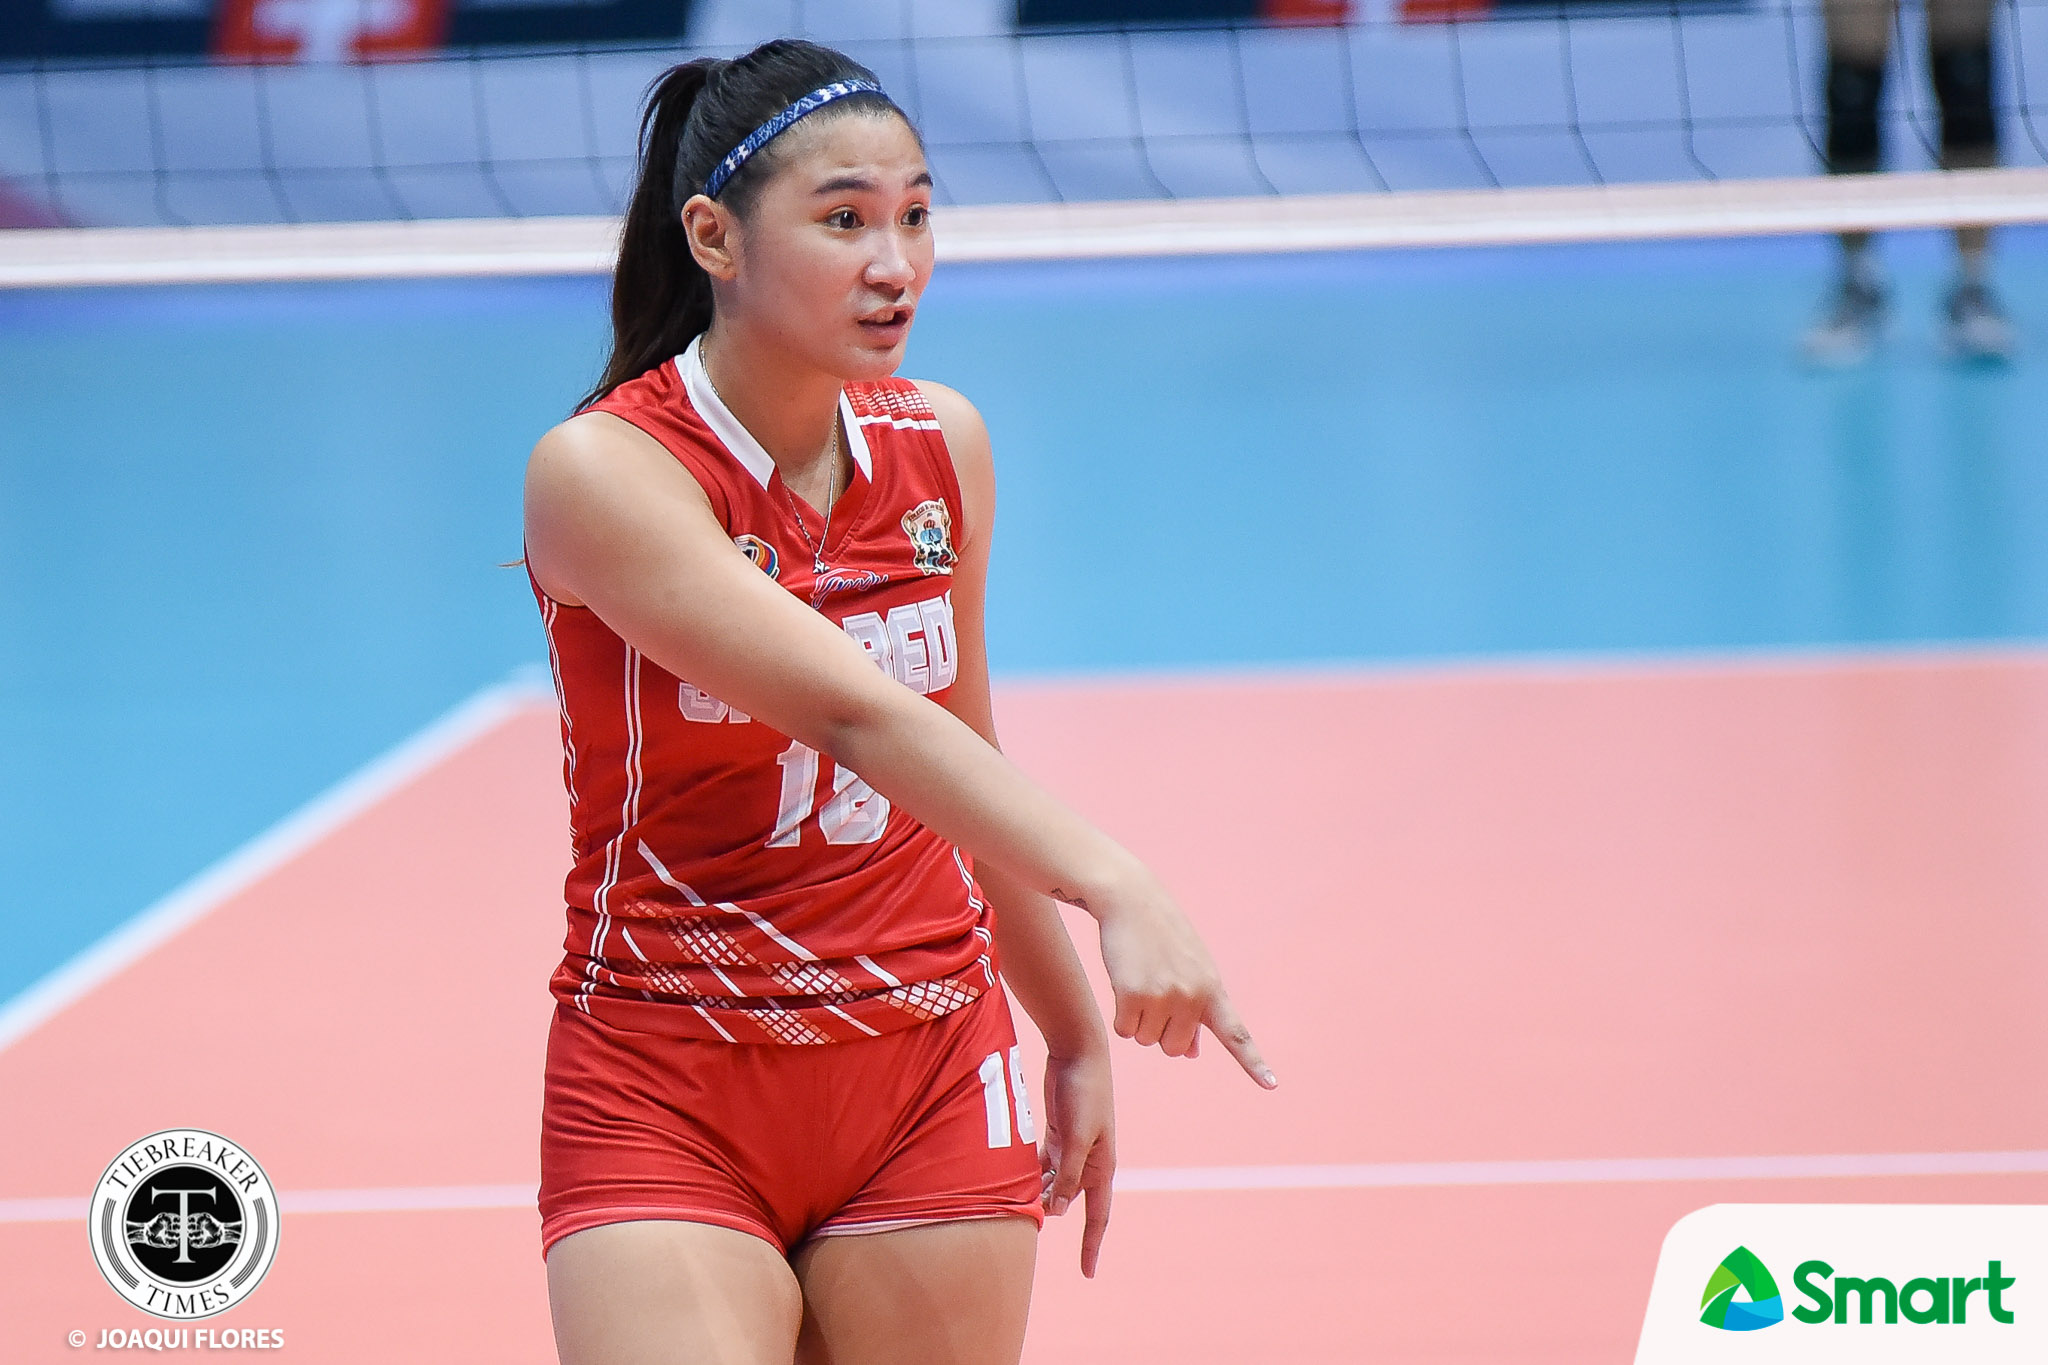 Philippine Sports News - Tiebreaker Times San Beda no longer intimidated by Arellano, says Cesca Racraquin NCAA News SBC Volleyball  San Beda Women's Volleyball NCAA Season 93 Women's Volleyball NCAA Season 93 Cesca Racraquin